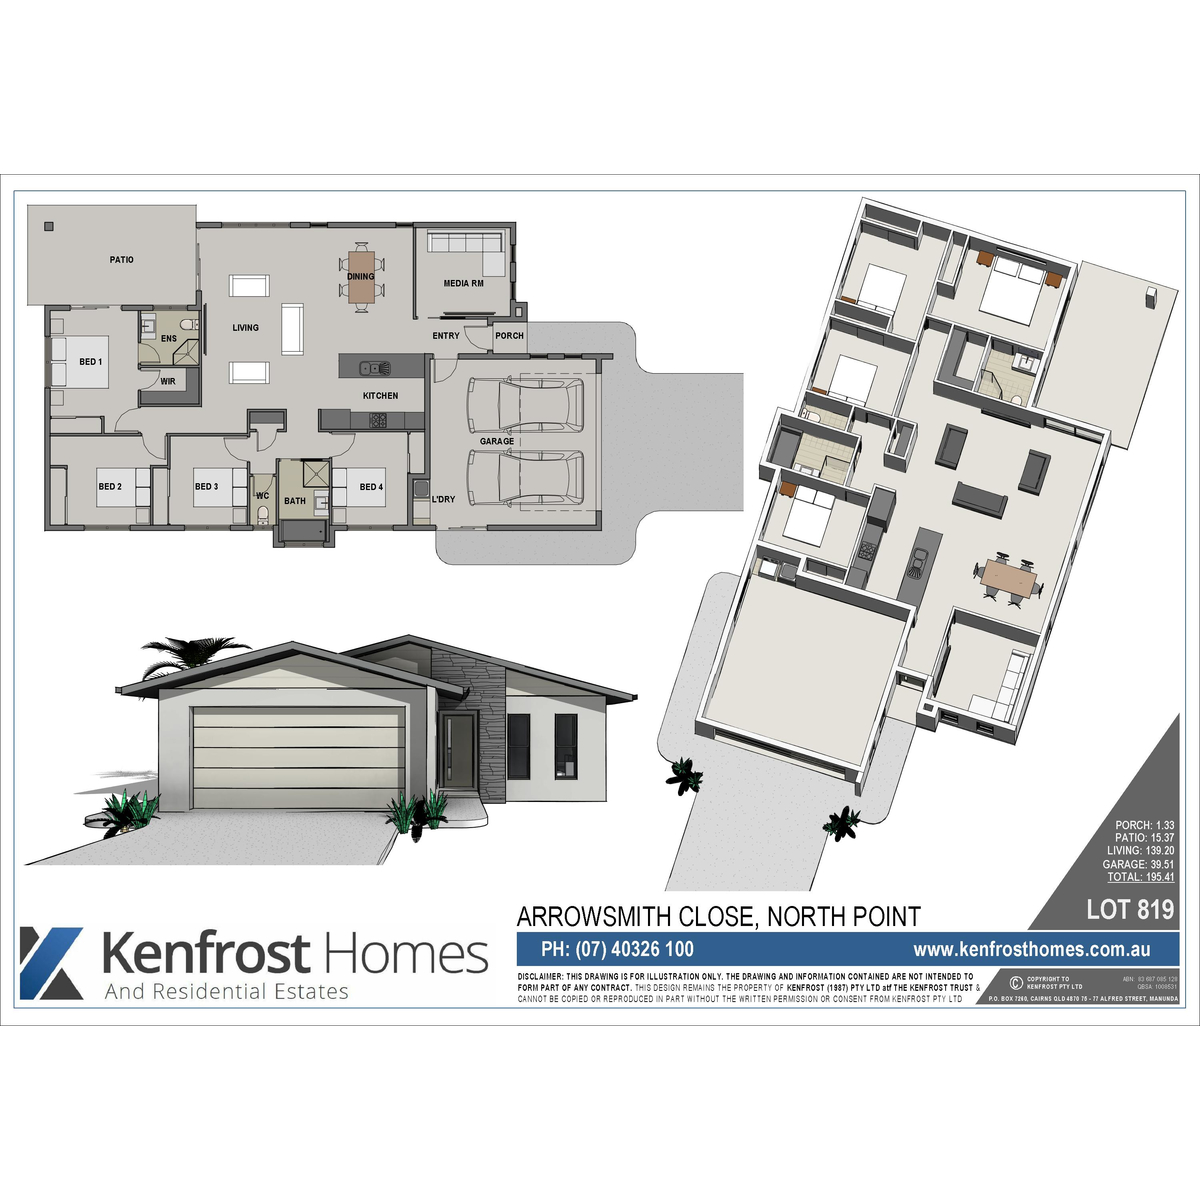 #1F5183 Lot 819 Arrowsmith Close Smithfield QLD 4878 Cairns Key  Highly Rated 9379 Air Conditioning Units Cairns wallpapers with 1200x1200 px on helpvideos.info - Air Conditioners, Air Coolers and more